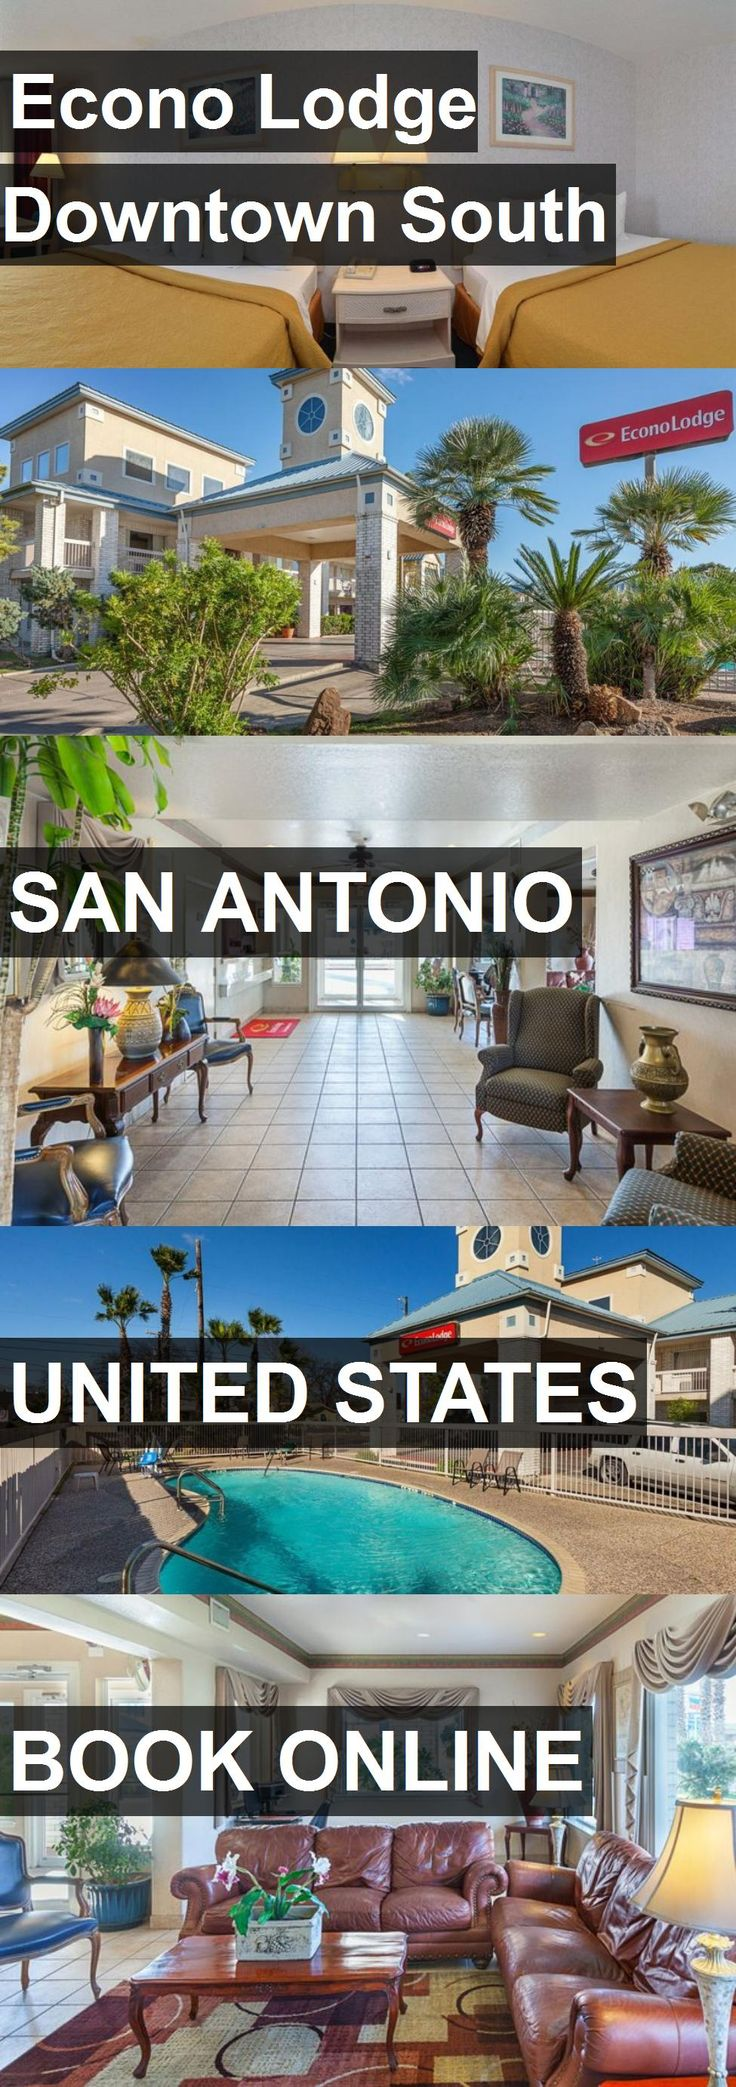 Hotel Econo Lodge Downtown South in San Antonio, United States. For more information, photos, reviews and best prices please follow the link. #UnitedStates #SanAntonio #travel #vacation #hotel